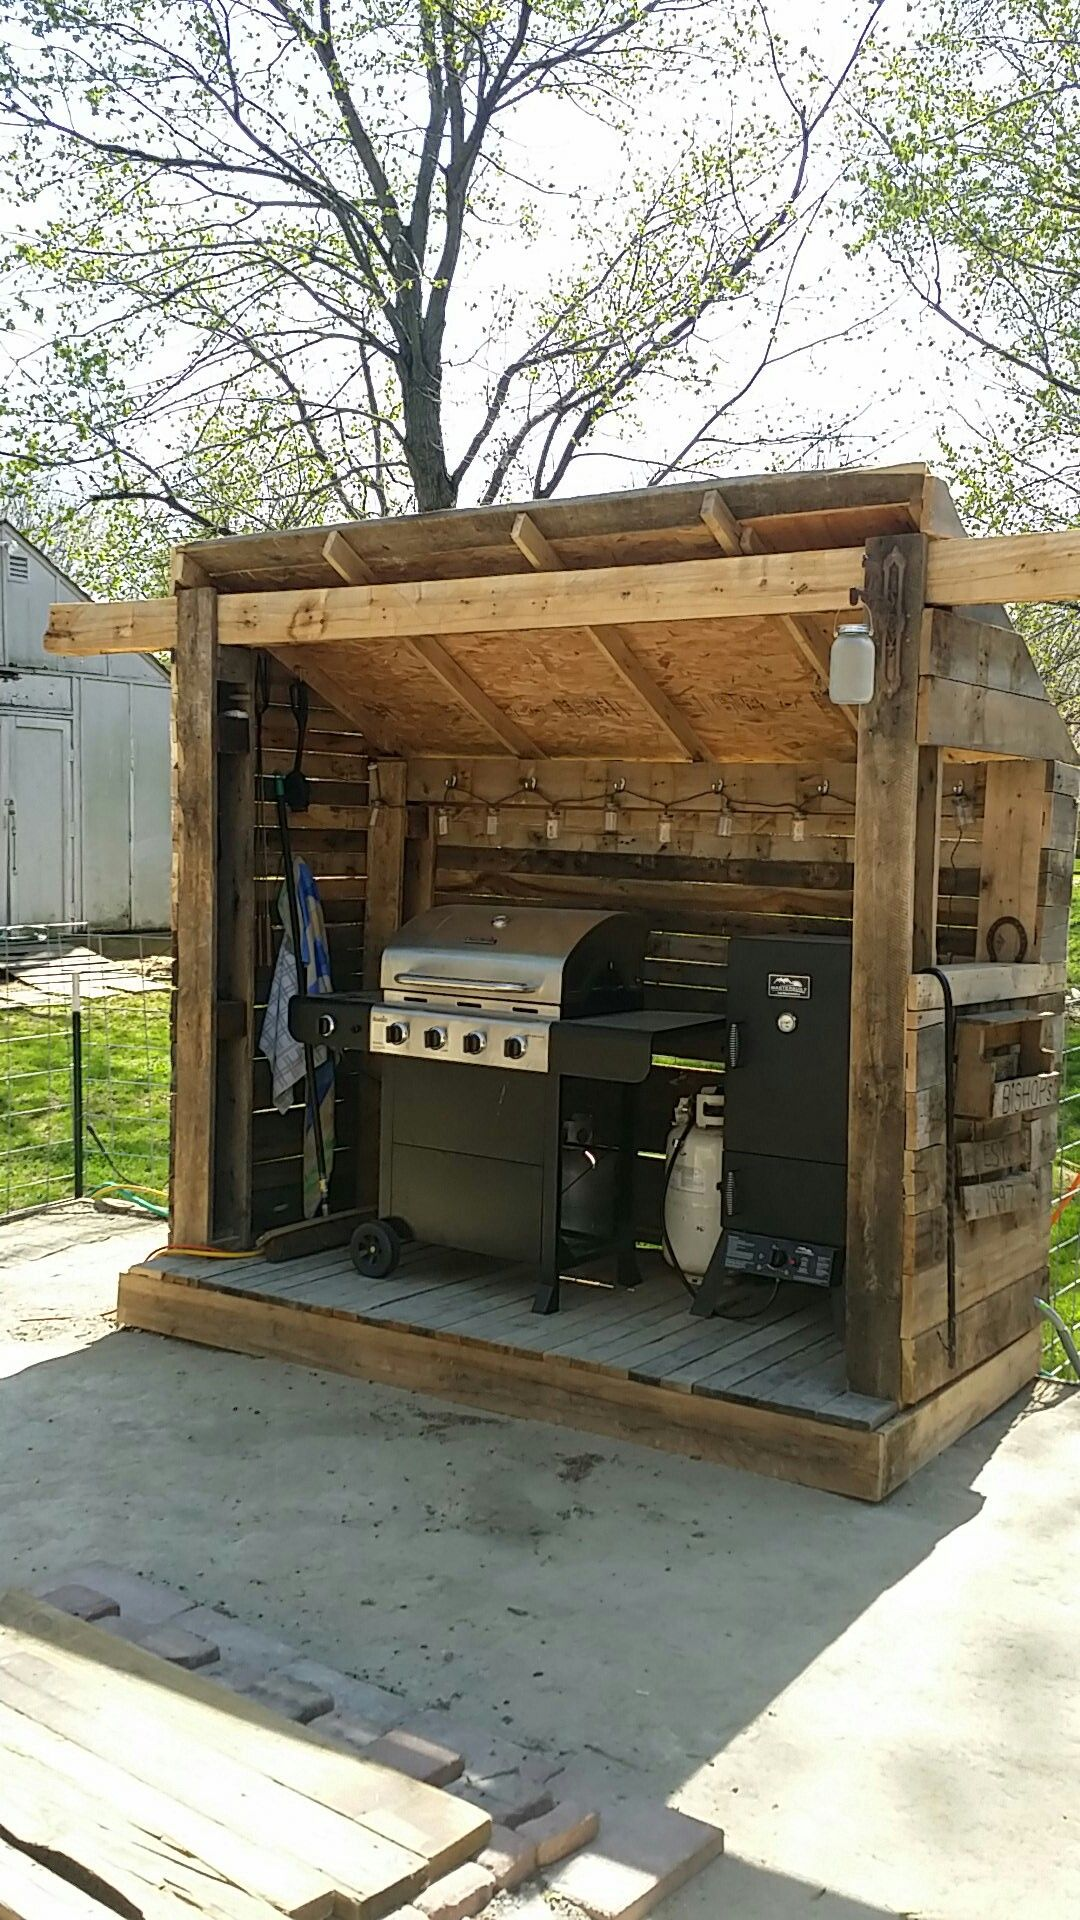 bbq hut | outdoor ideas in 2018 | pinterest | bbq hut, bbq and bbq shed